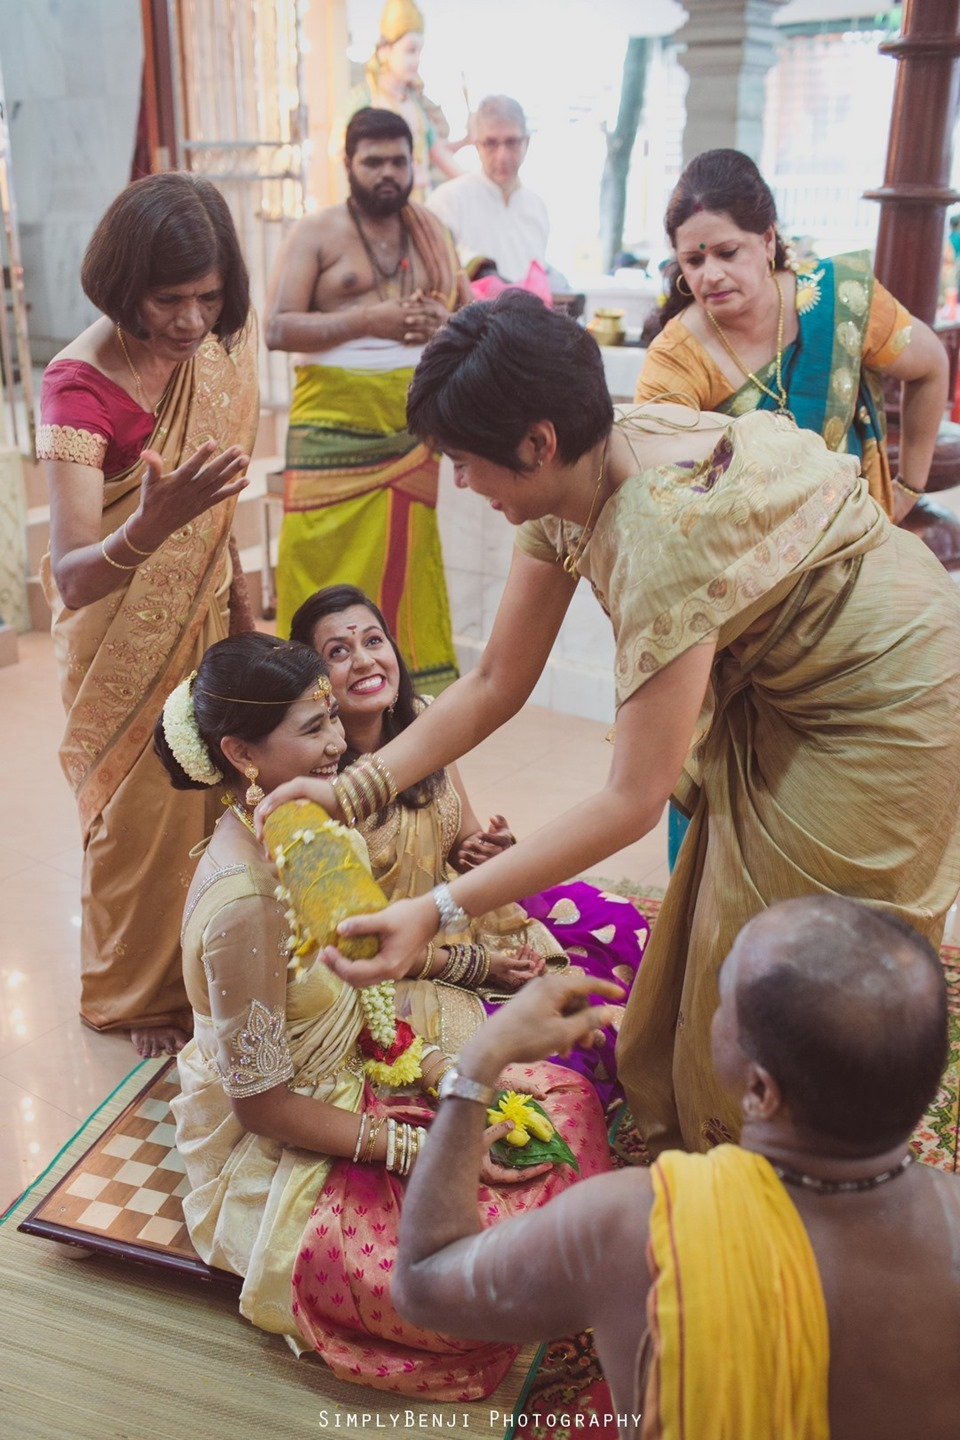 Tamil Wedding at Sri Anantha Vel Murugan Alayam Temple and Reception at Petaling Jaya Crystal Crown Hotel_KL Photographer_0066